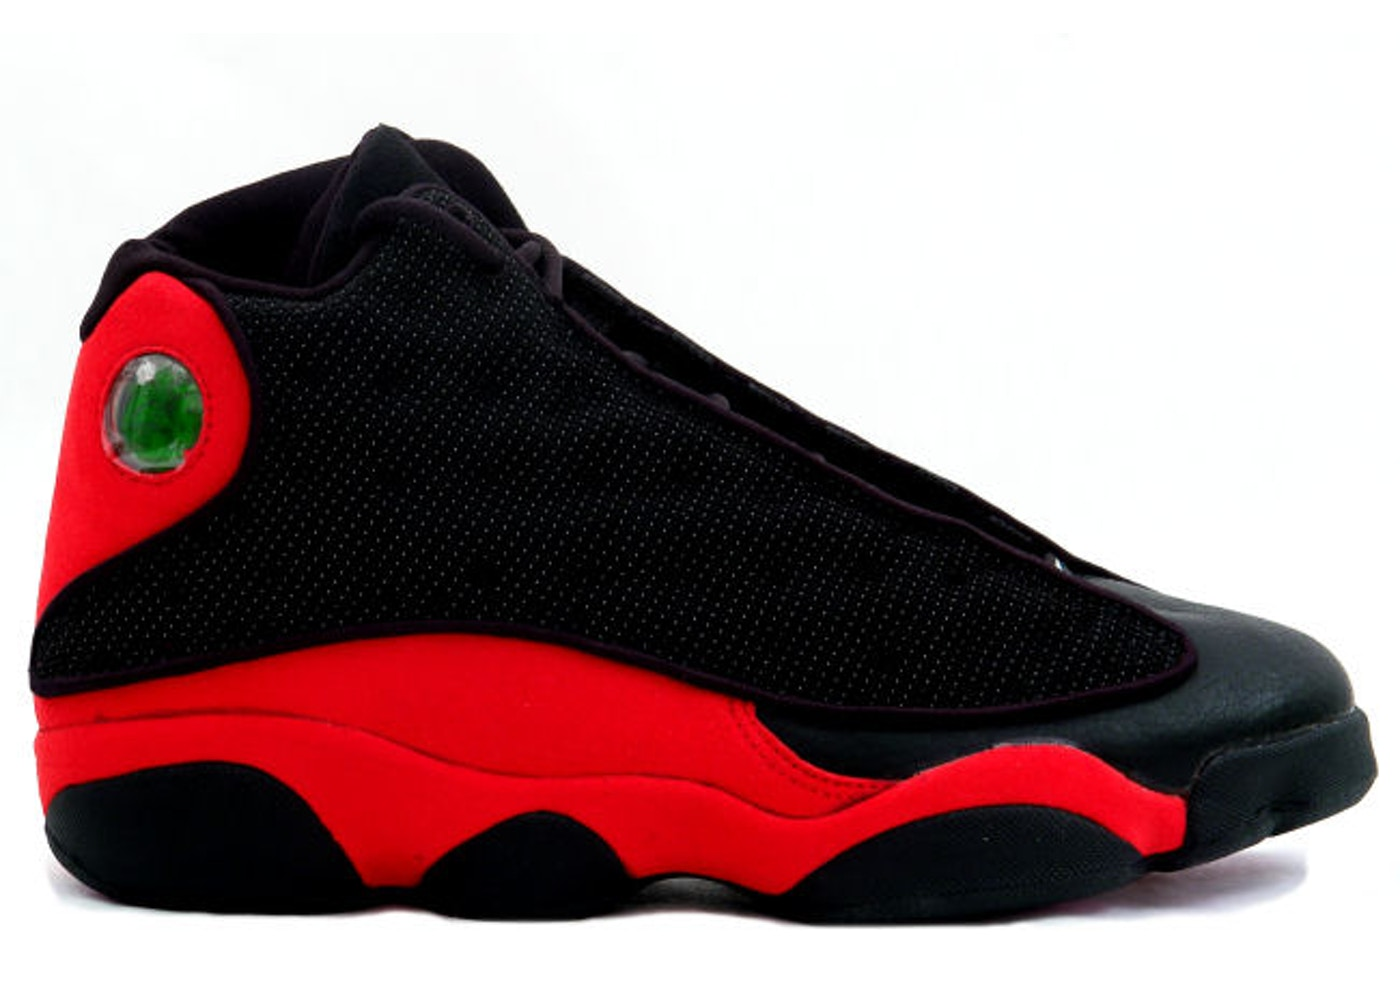 lowest price cf520 a2b76 Air Jordan 13 Size 6 Shoes - Featured